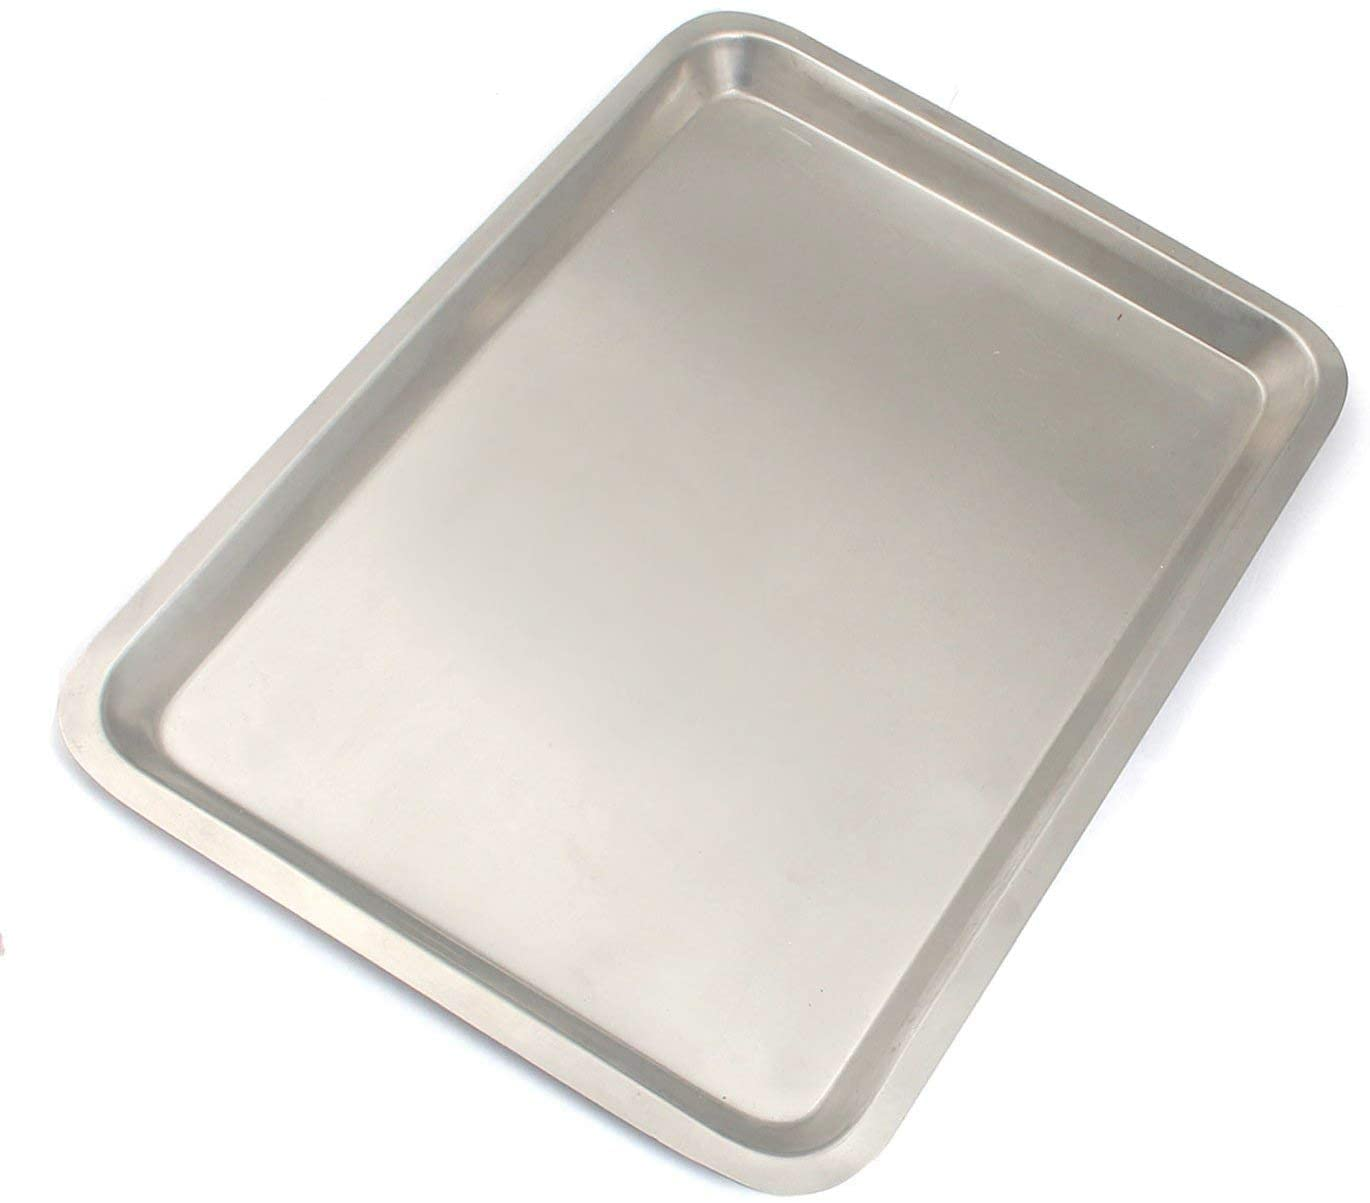 G.S O.R Grade 1 Scaler Tray CURETTES, Explorers, Mirrors, Probes, Dental Instruments Best Quality